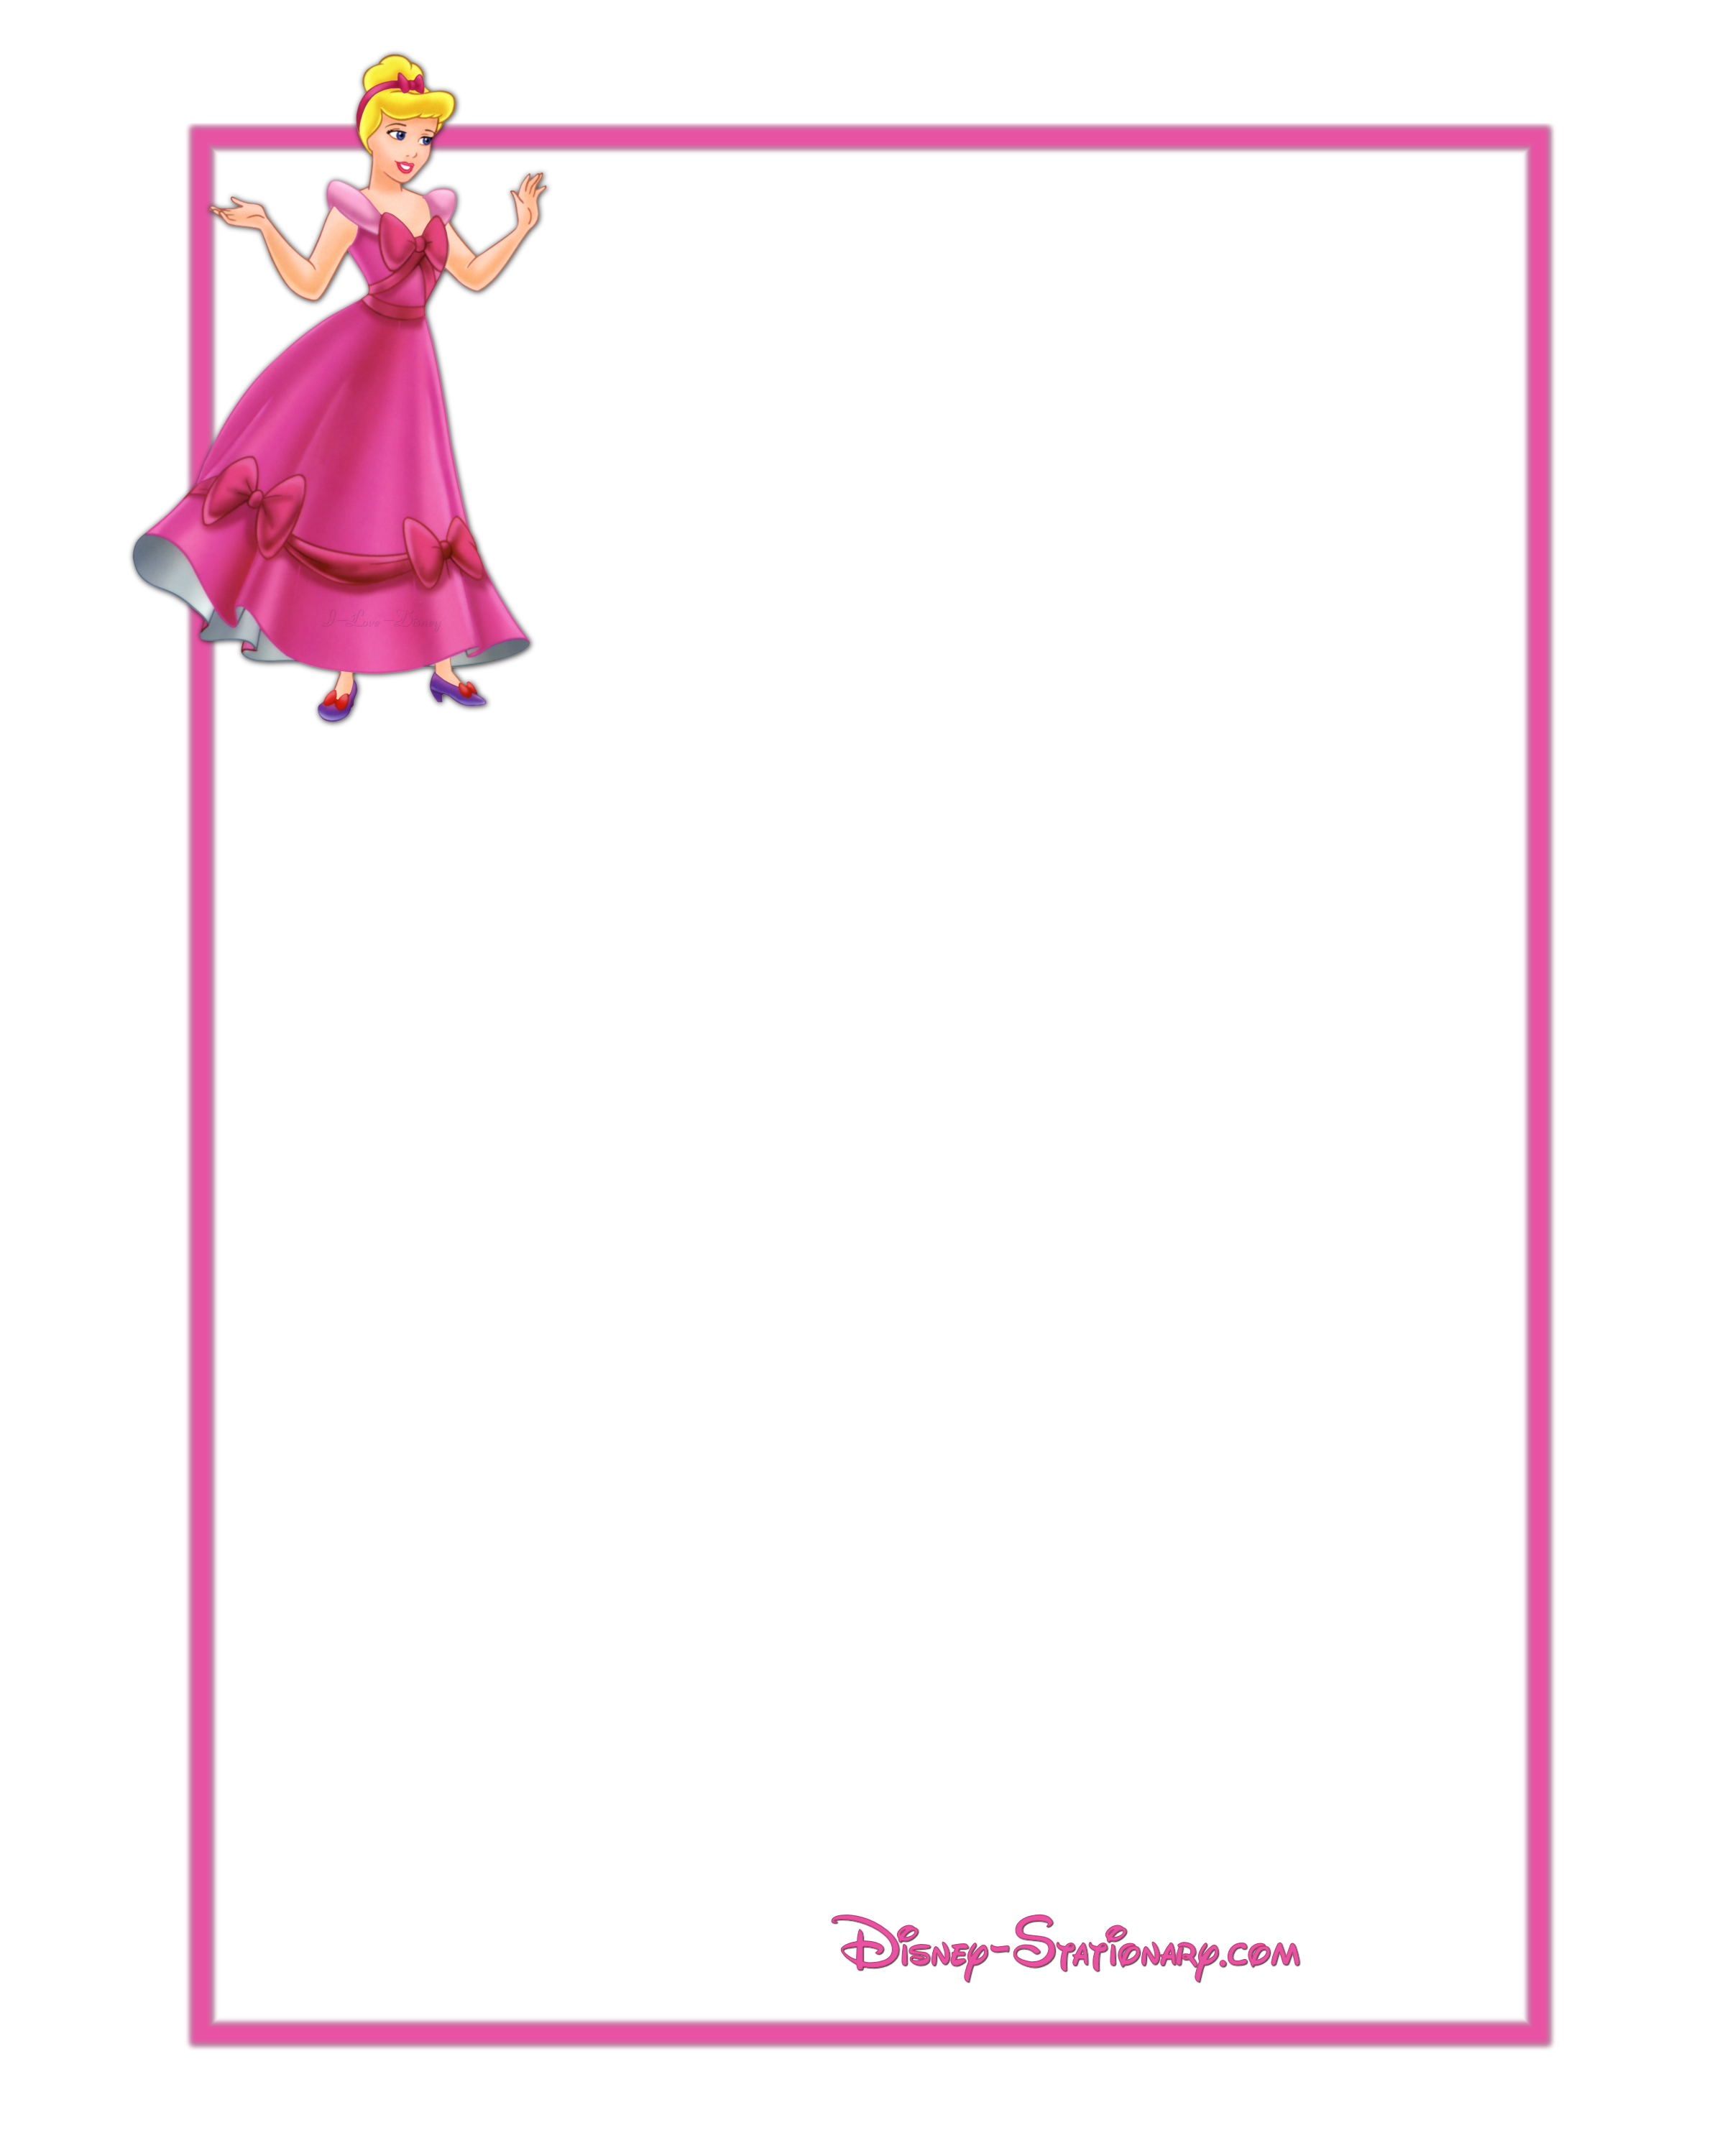 birthday party borders for invitations ; birthday-party-invitation-clipart-cliparthut-free-clipart-vz1k3k-clipart